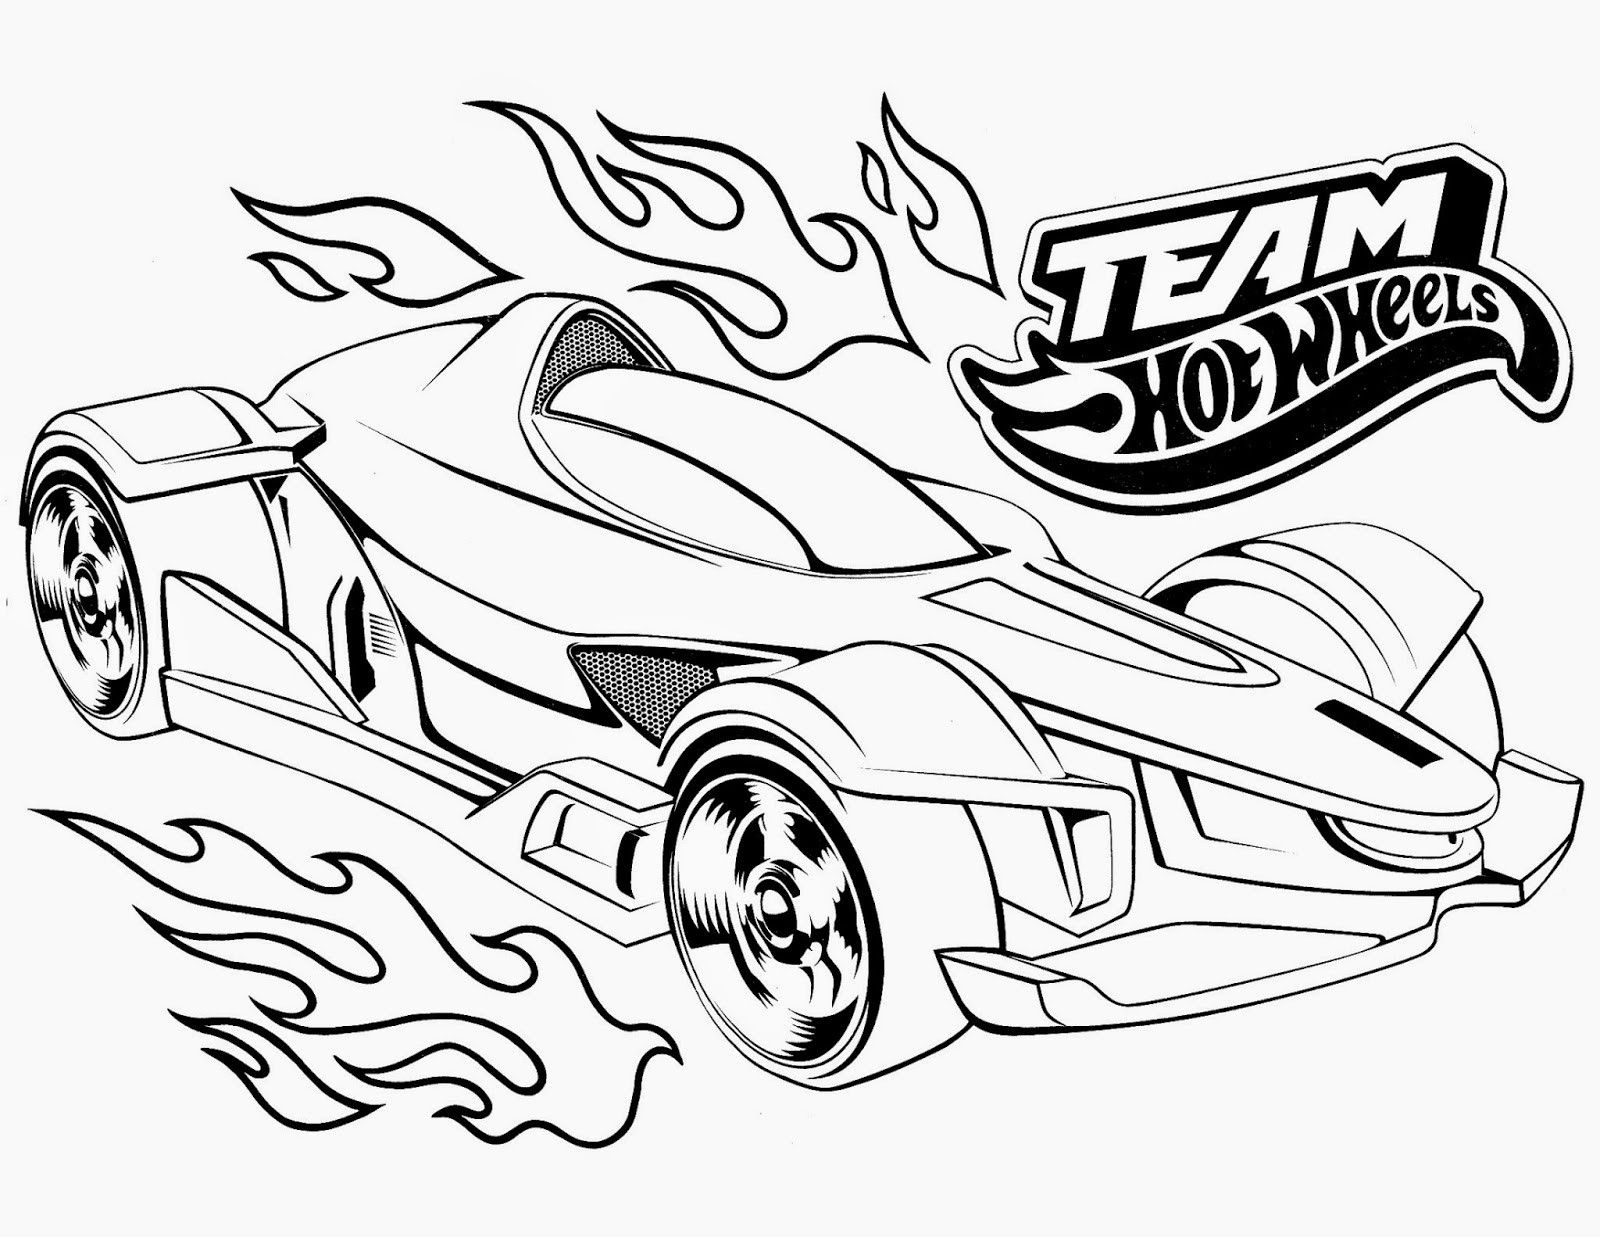 Race Car Coloring Pages Cool Race Car Coloring Pages Fresh Hot Wheels Racing League Hot Davemelillo Com In 2020 Cars Coloring Pages Race Car Coloring Pages Truck Coloring Pages